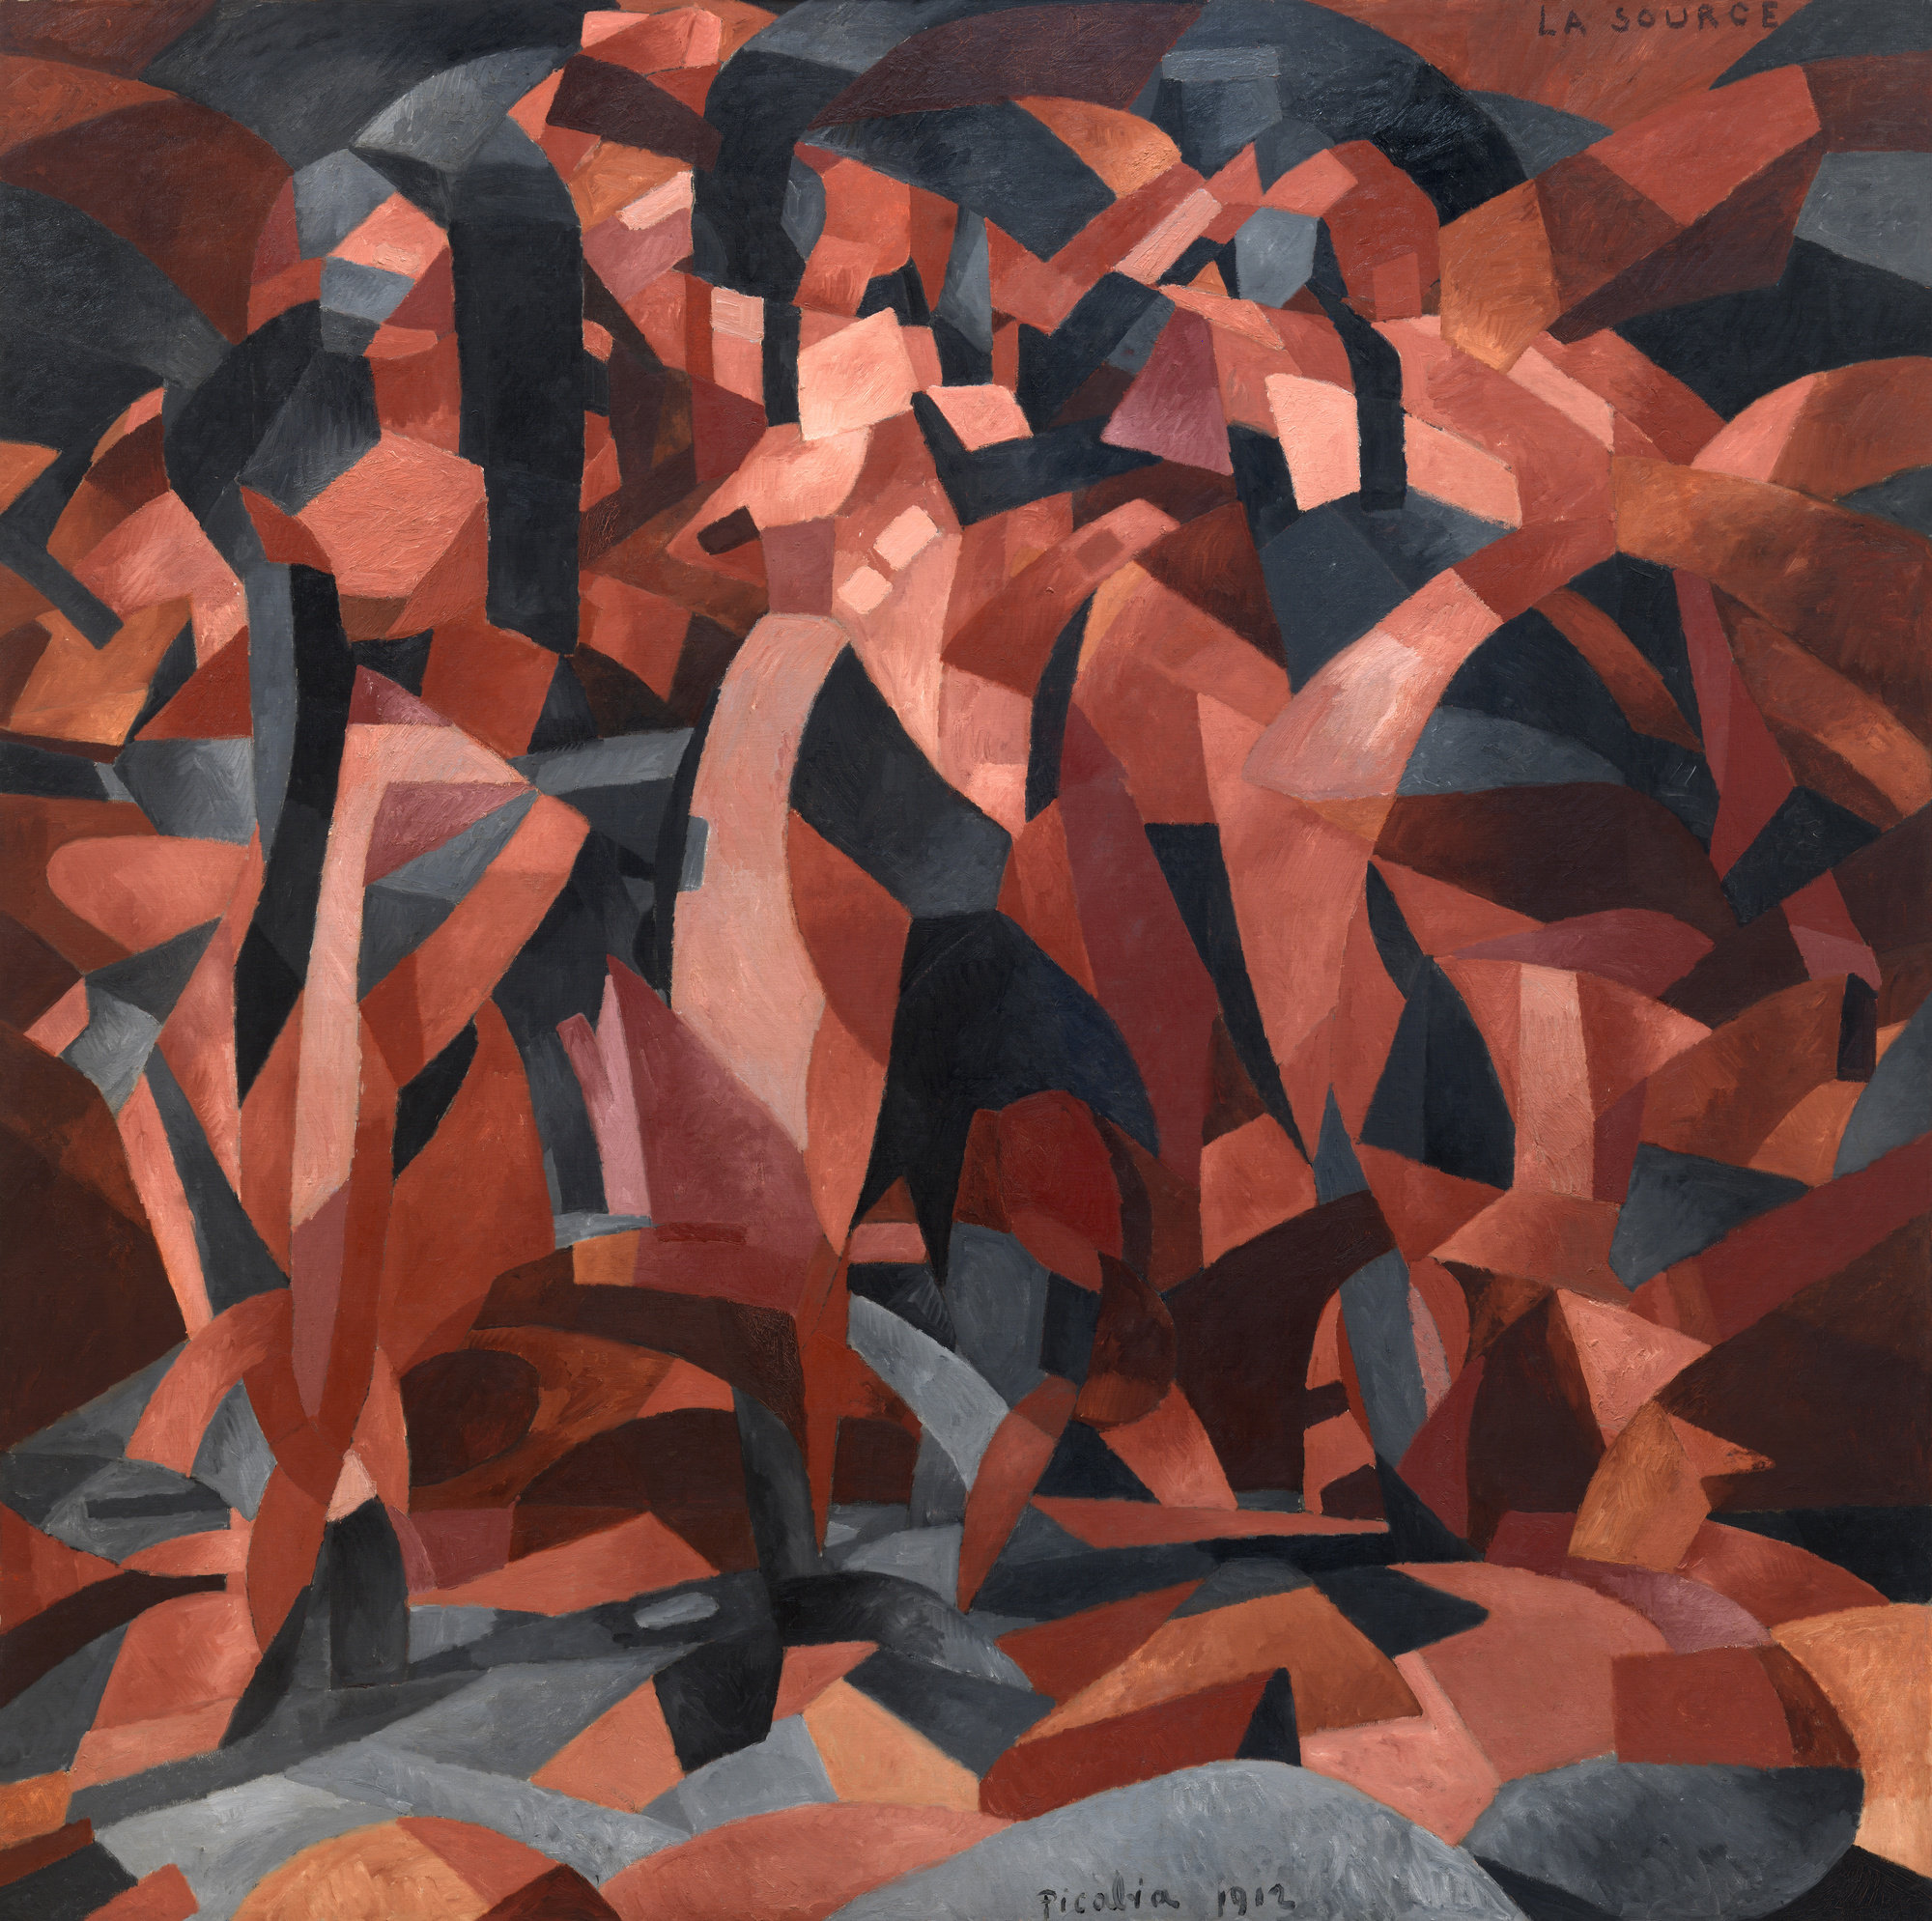 Francis Picabia. La Source (The Spring). 1912. Oil on canvas, 8′ 2 1/4″ × 8′ 2 1/8″ (249.6 × 249.3 cm). The Museum of Modern Art, New York. Eugene and Agnes E. Meyer Collection, given by their family, 1974. © 2016 Artist Rights Society (ARS), New York/ADAGP, Paris. Photo: The Museum of Modern Art, John Wronn and Jonathan Muzikar